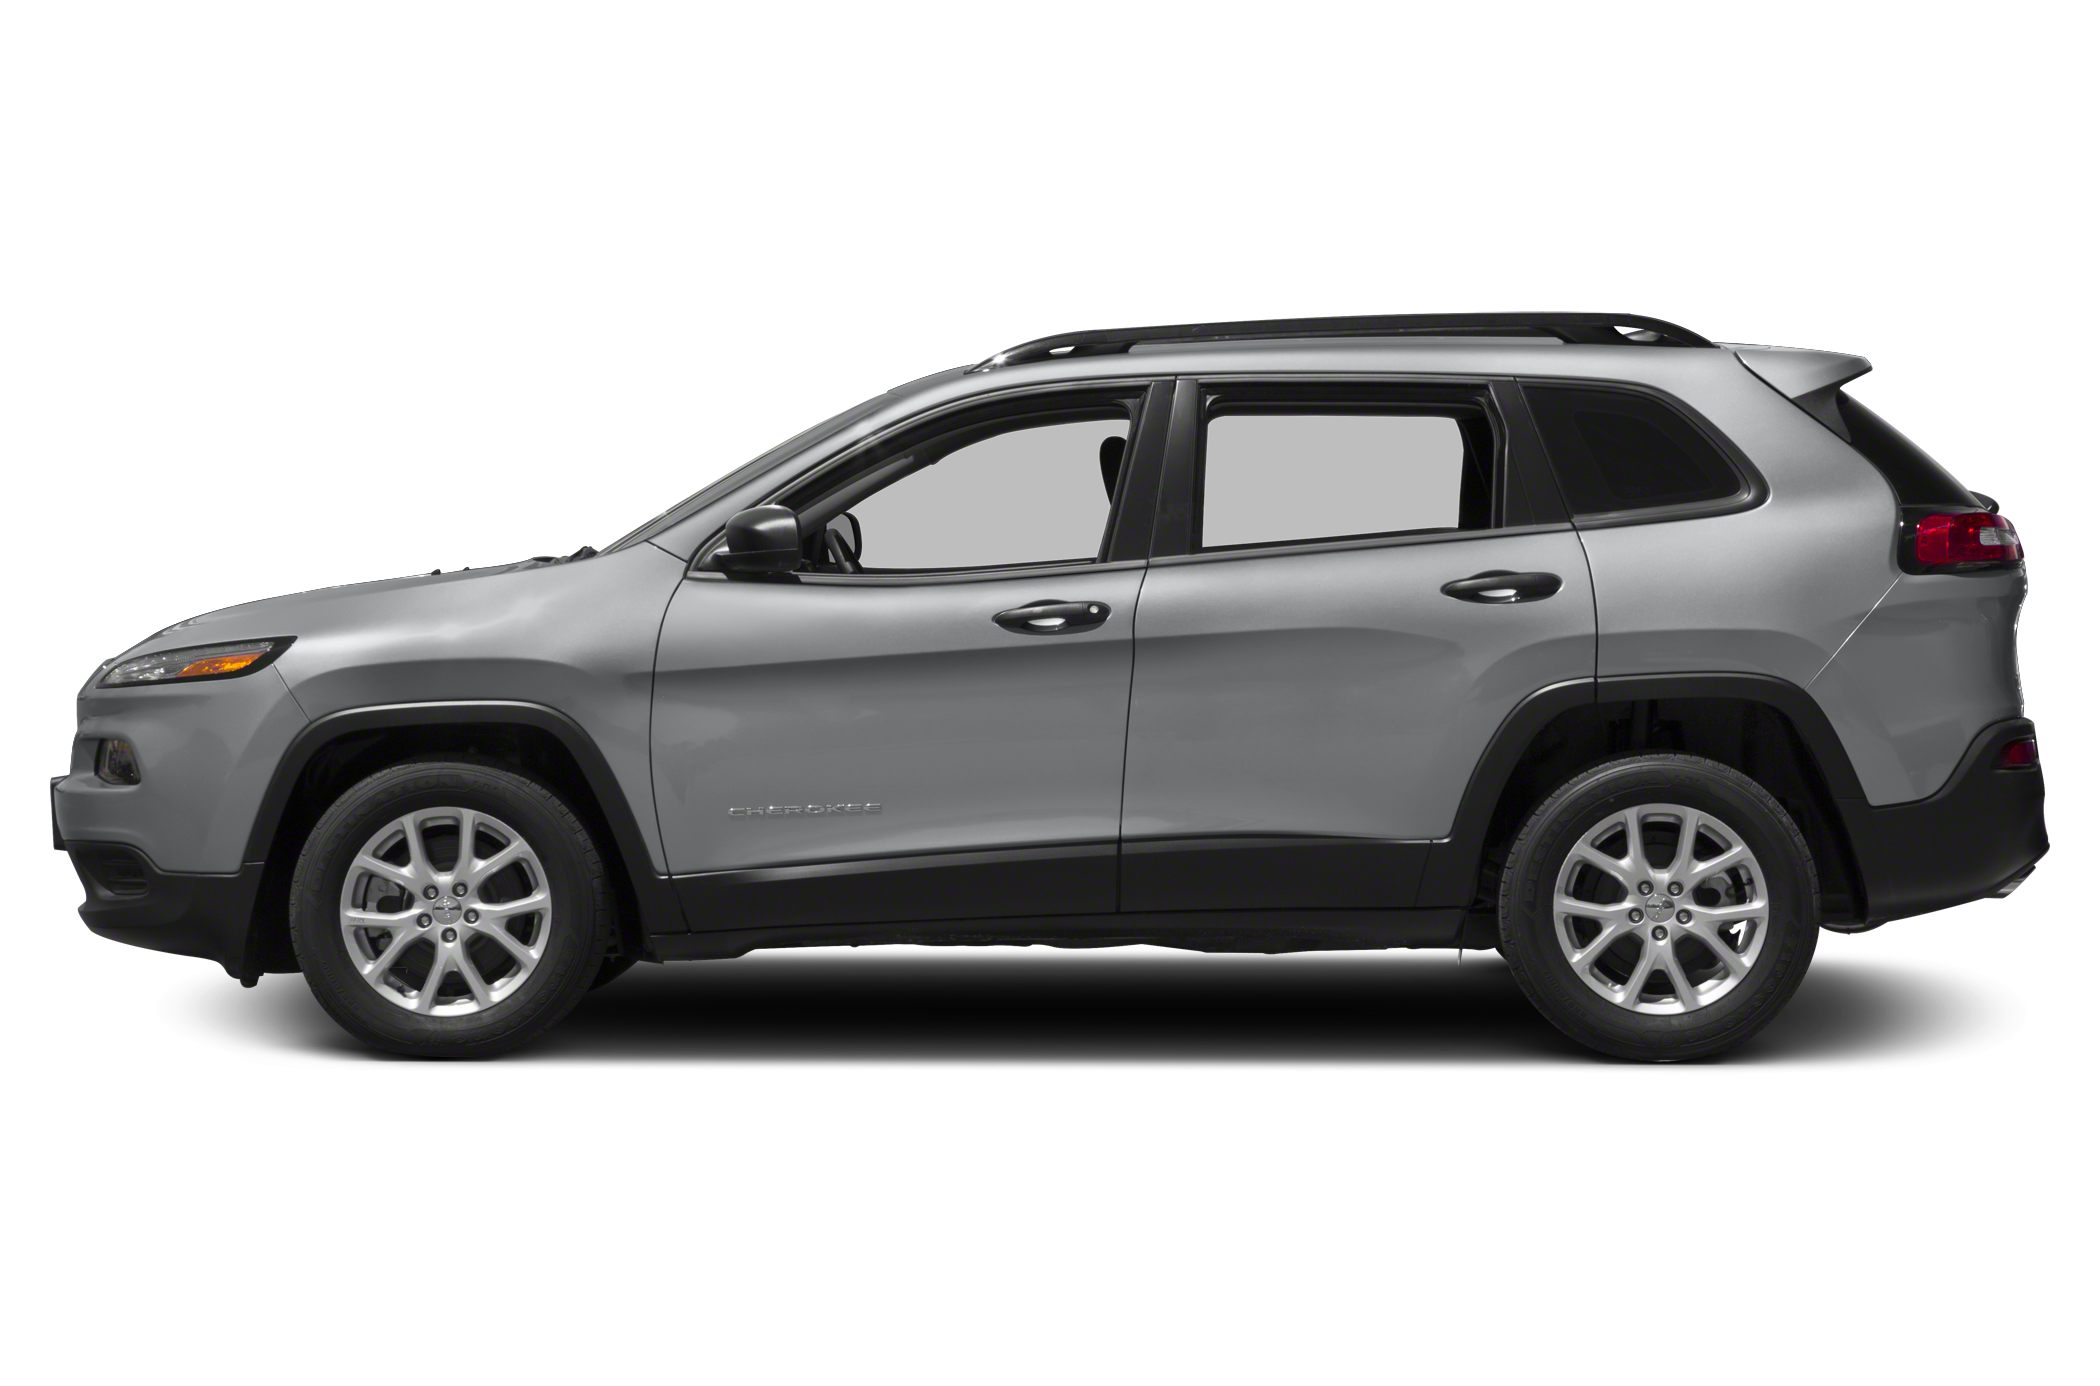 the car h cherokee grand mazda connection incentives jeep gen eco new featured next whats driven texas